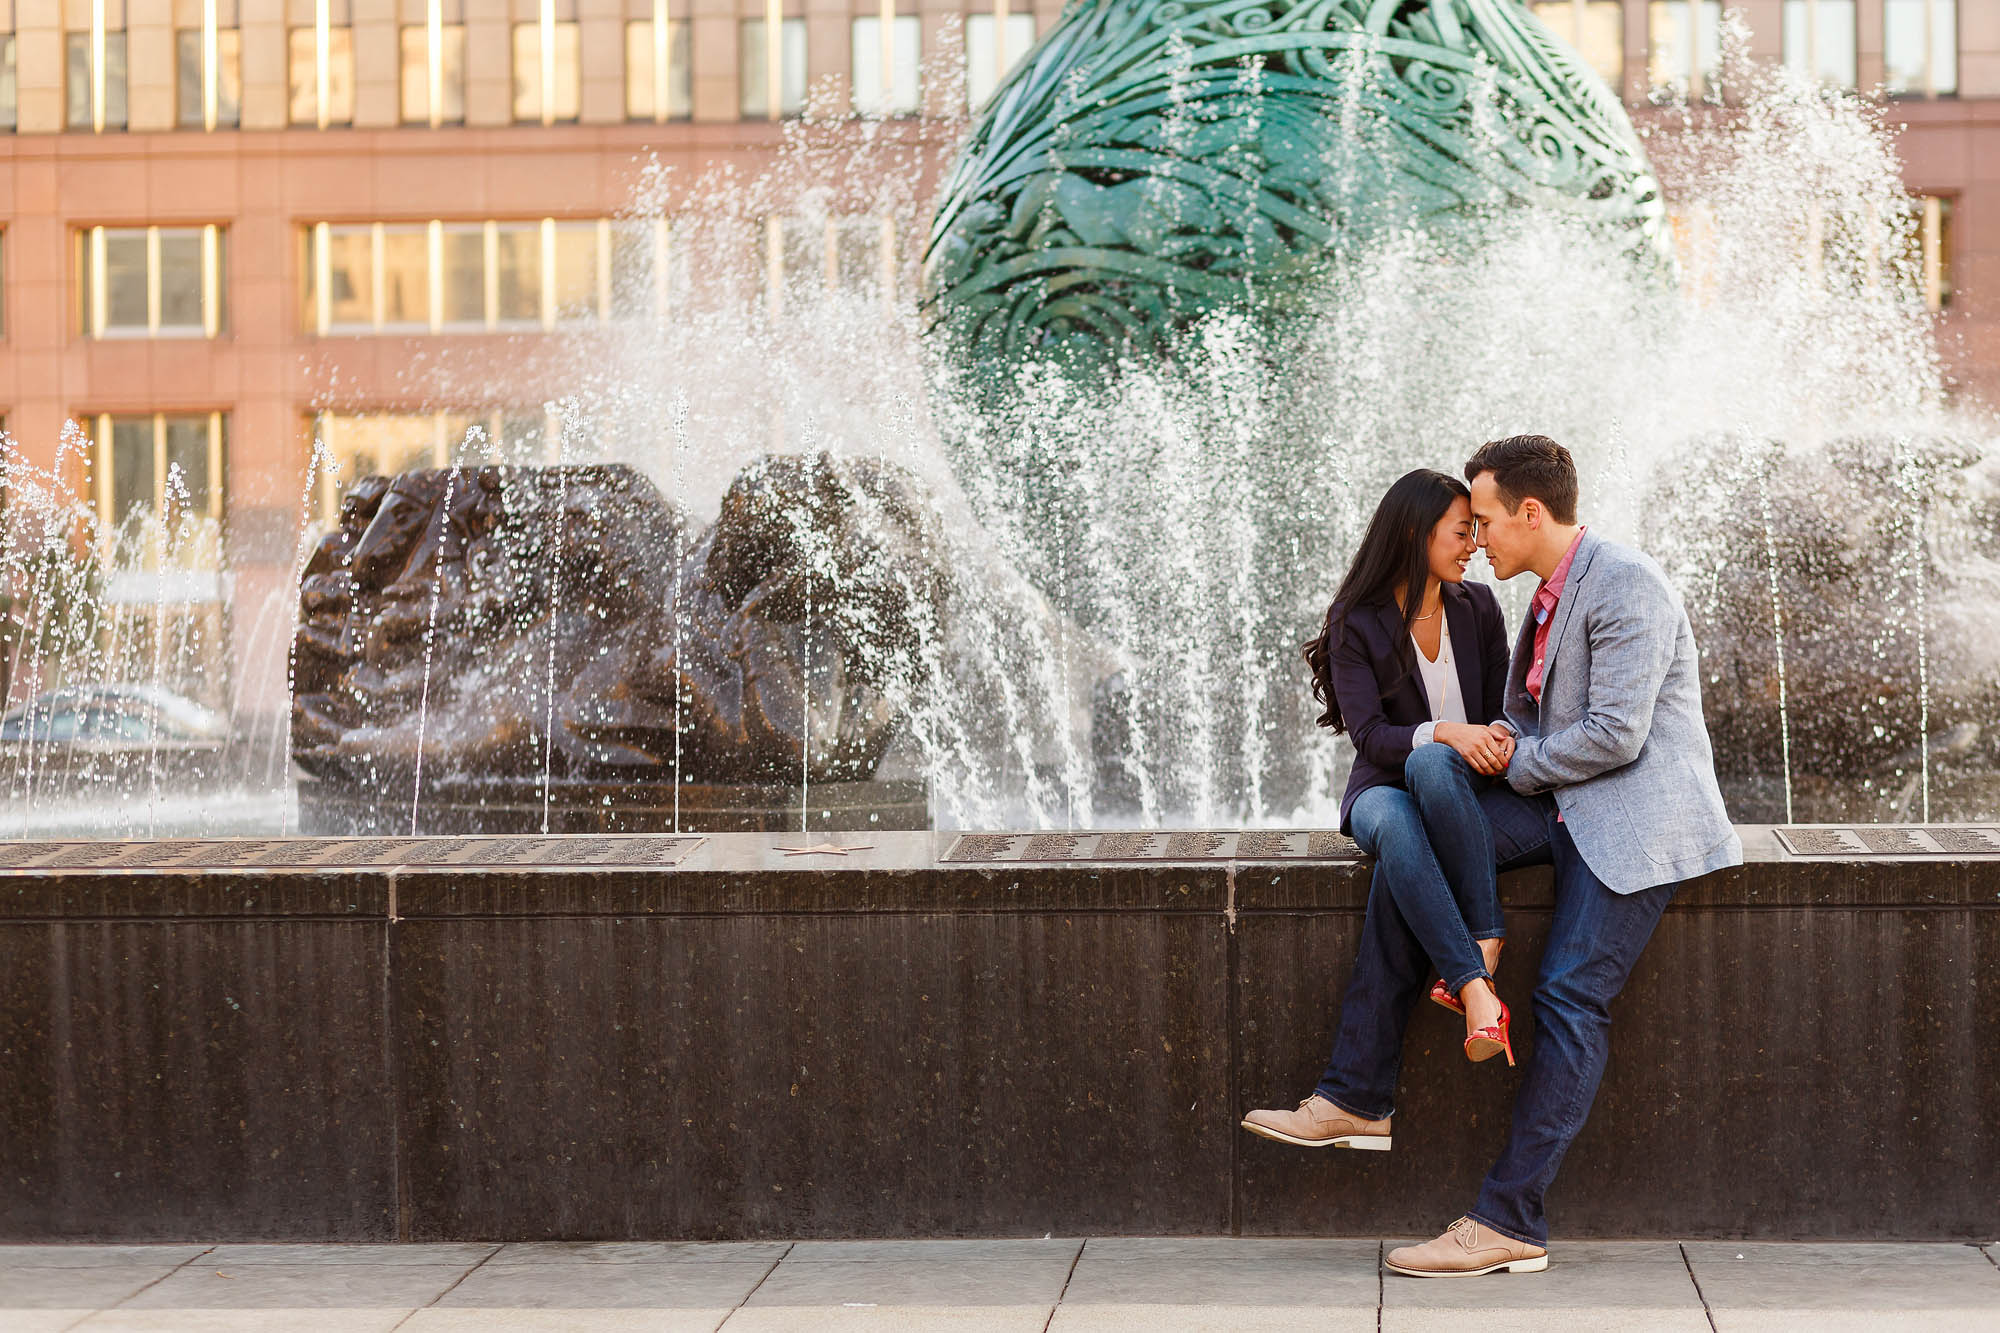 An engaged couple sit on the ledge of a fountain leaning in with foreheads touching while the fountain water sprays behind them with a red brick building in the background in Cleveland, Ohio.